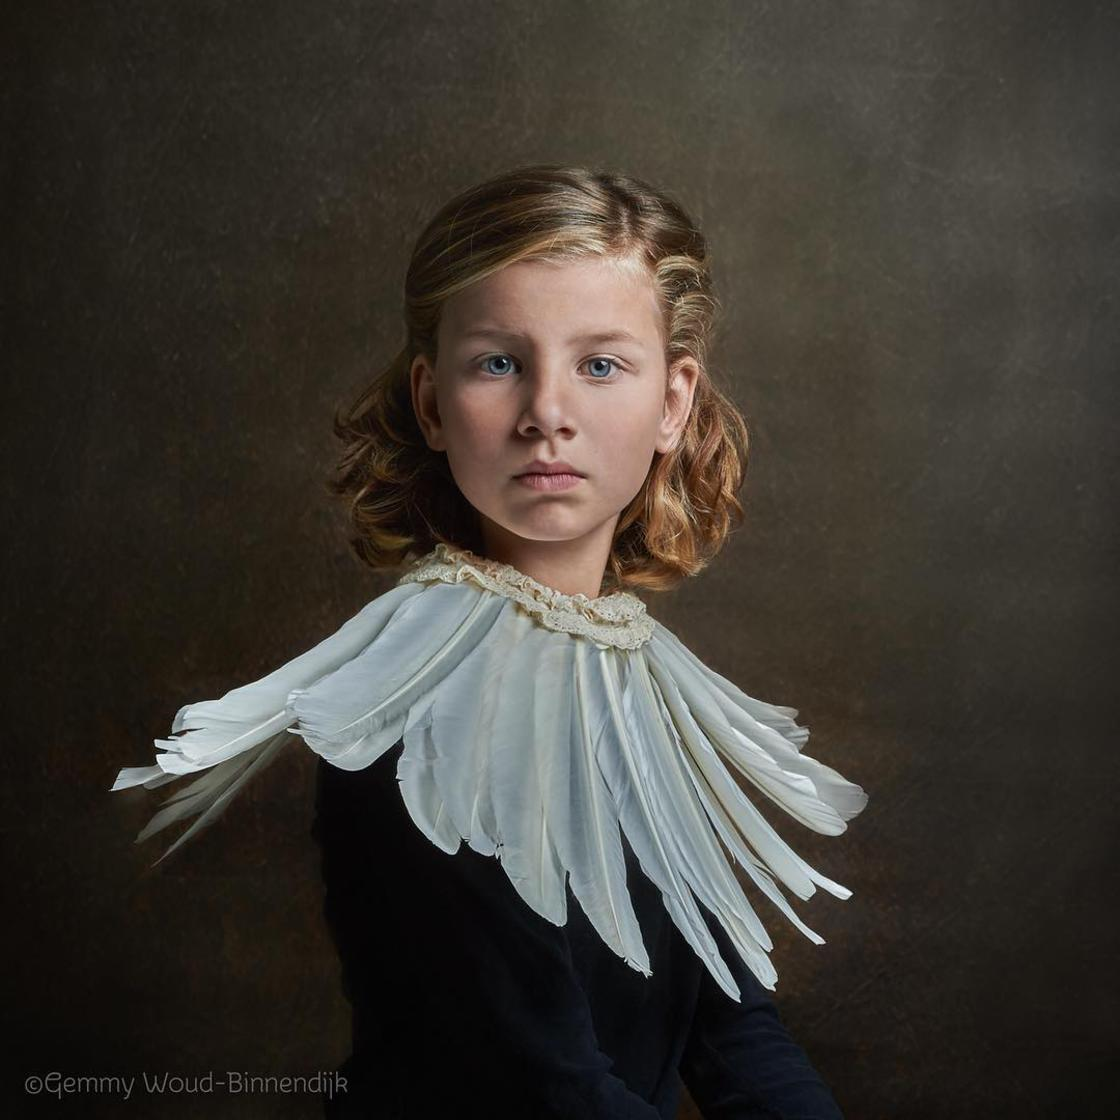 This photographer composes her portraits like the great masters of painting